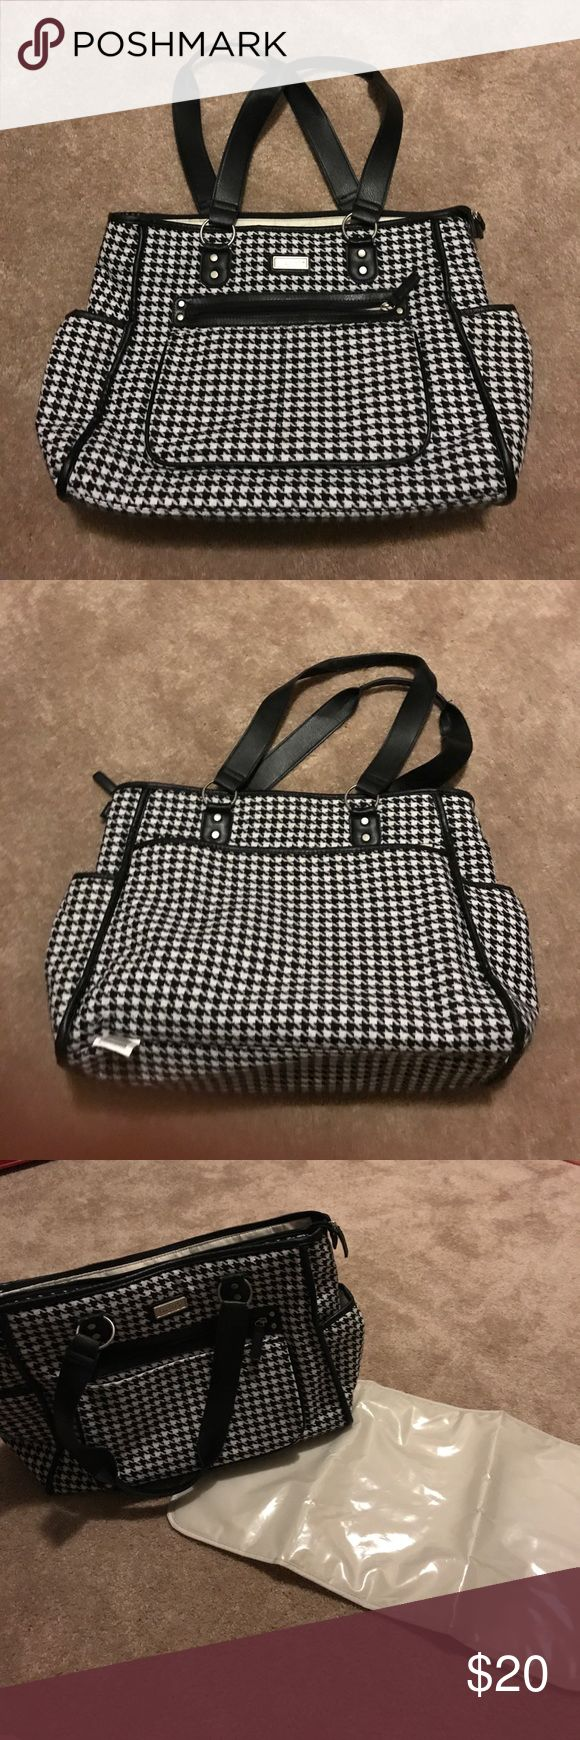 Carter's Black & White diaper bag with pad Fits so much stuff for you and baby! Tons of pockets. Great condition. Carter's Bags Baby Bags